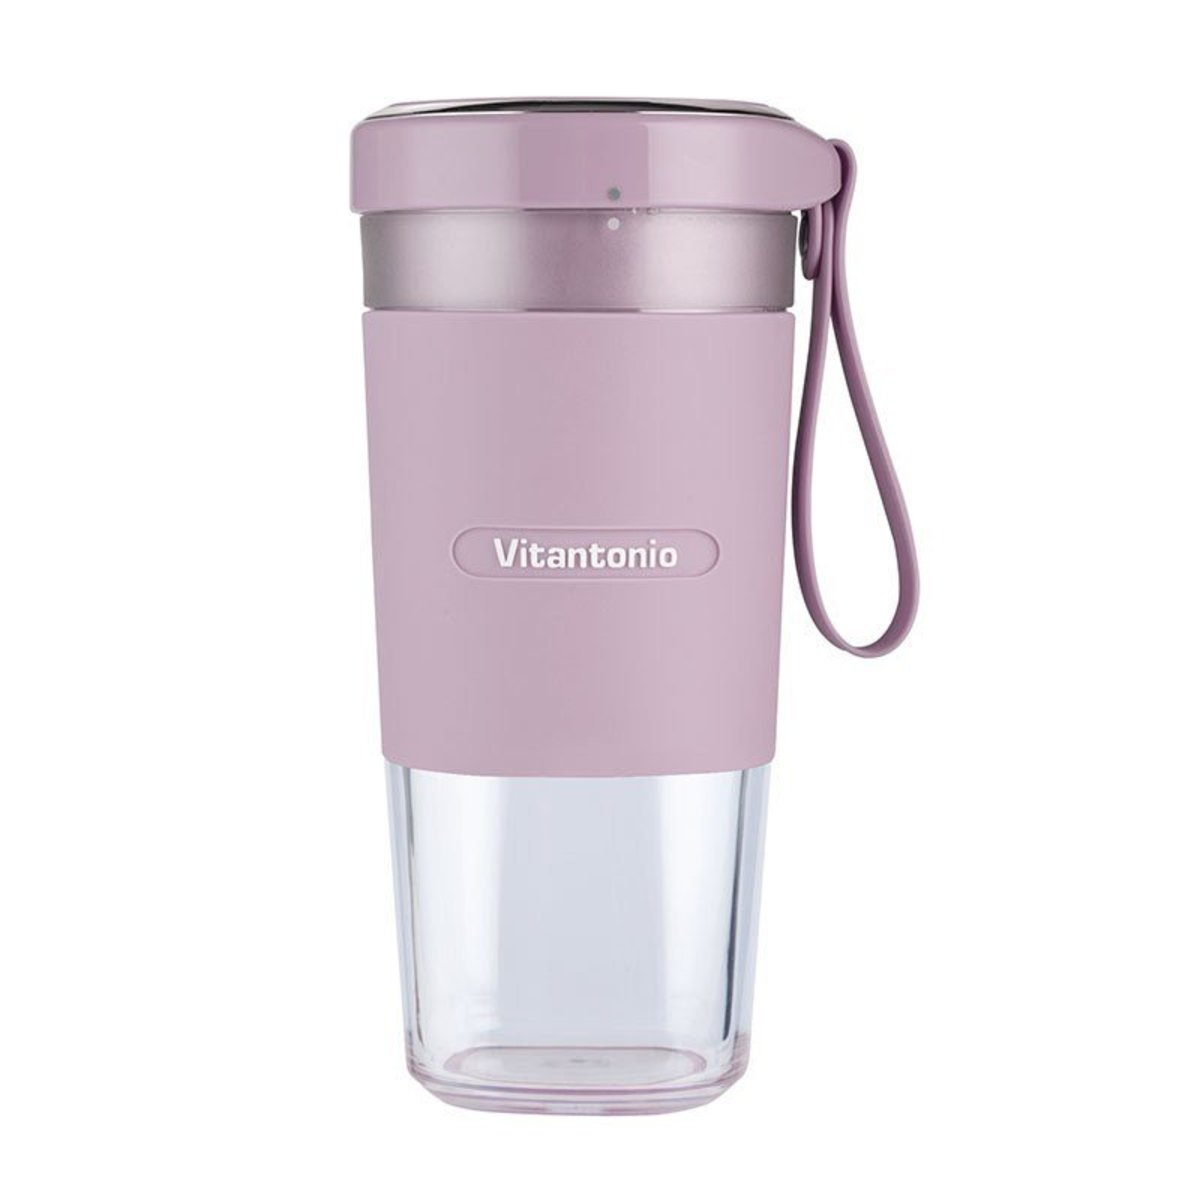 Vitantonio Cordless My Bottle Blender Grace Pink VBL-1000A-GP